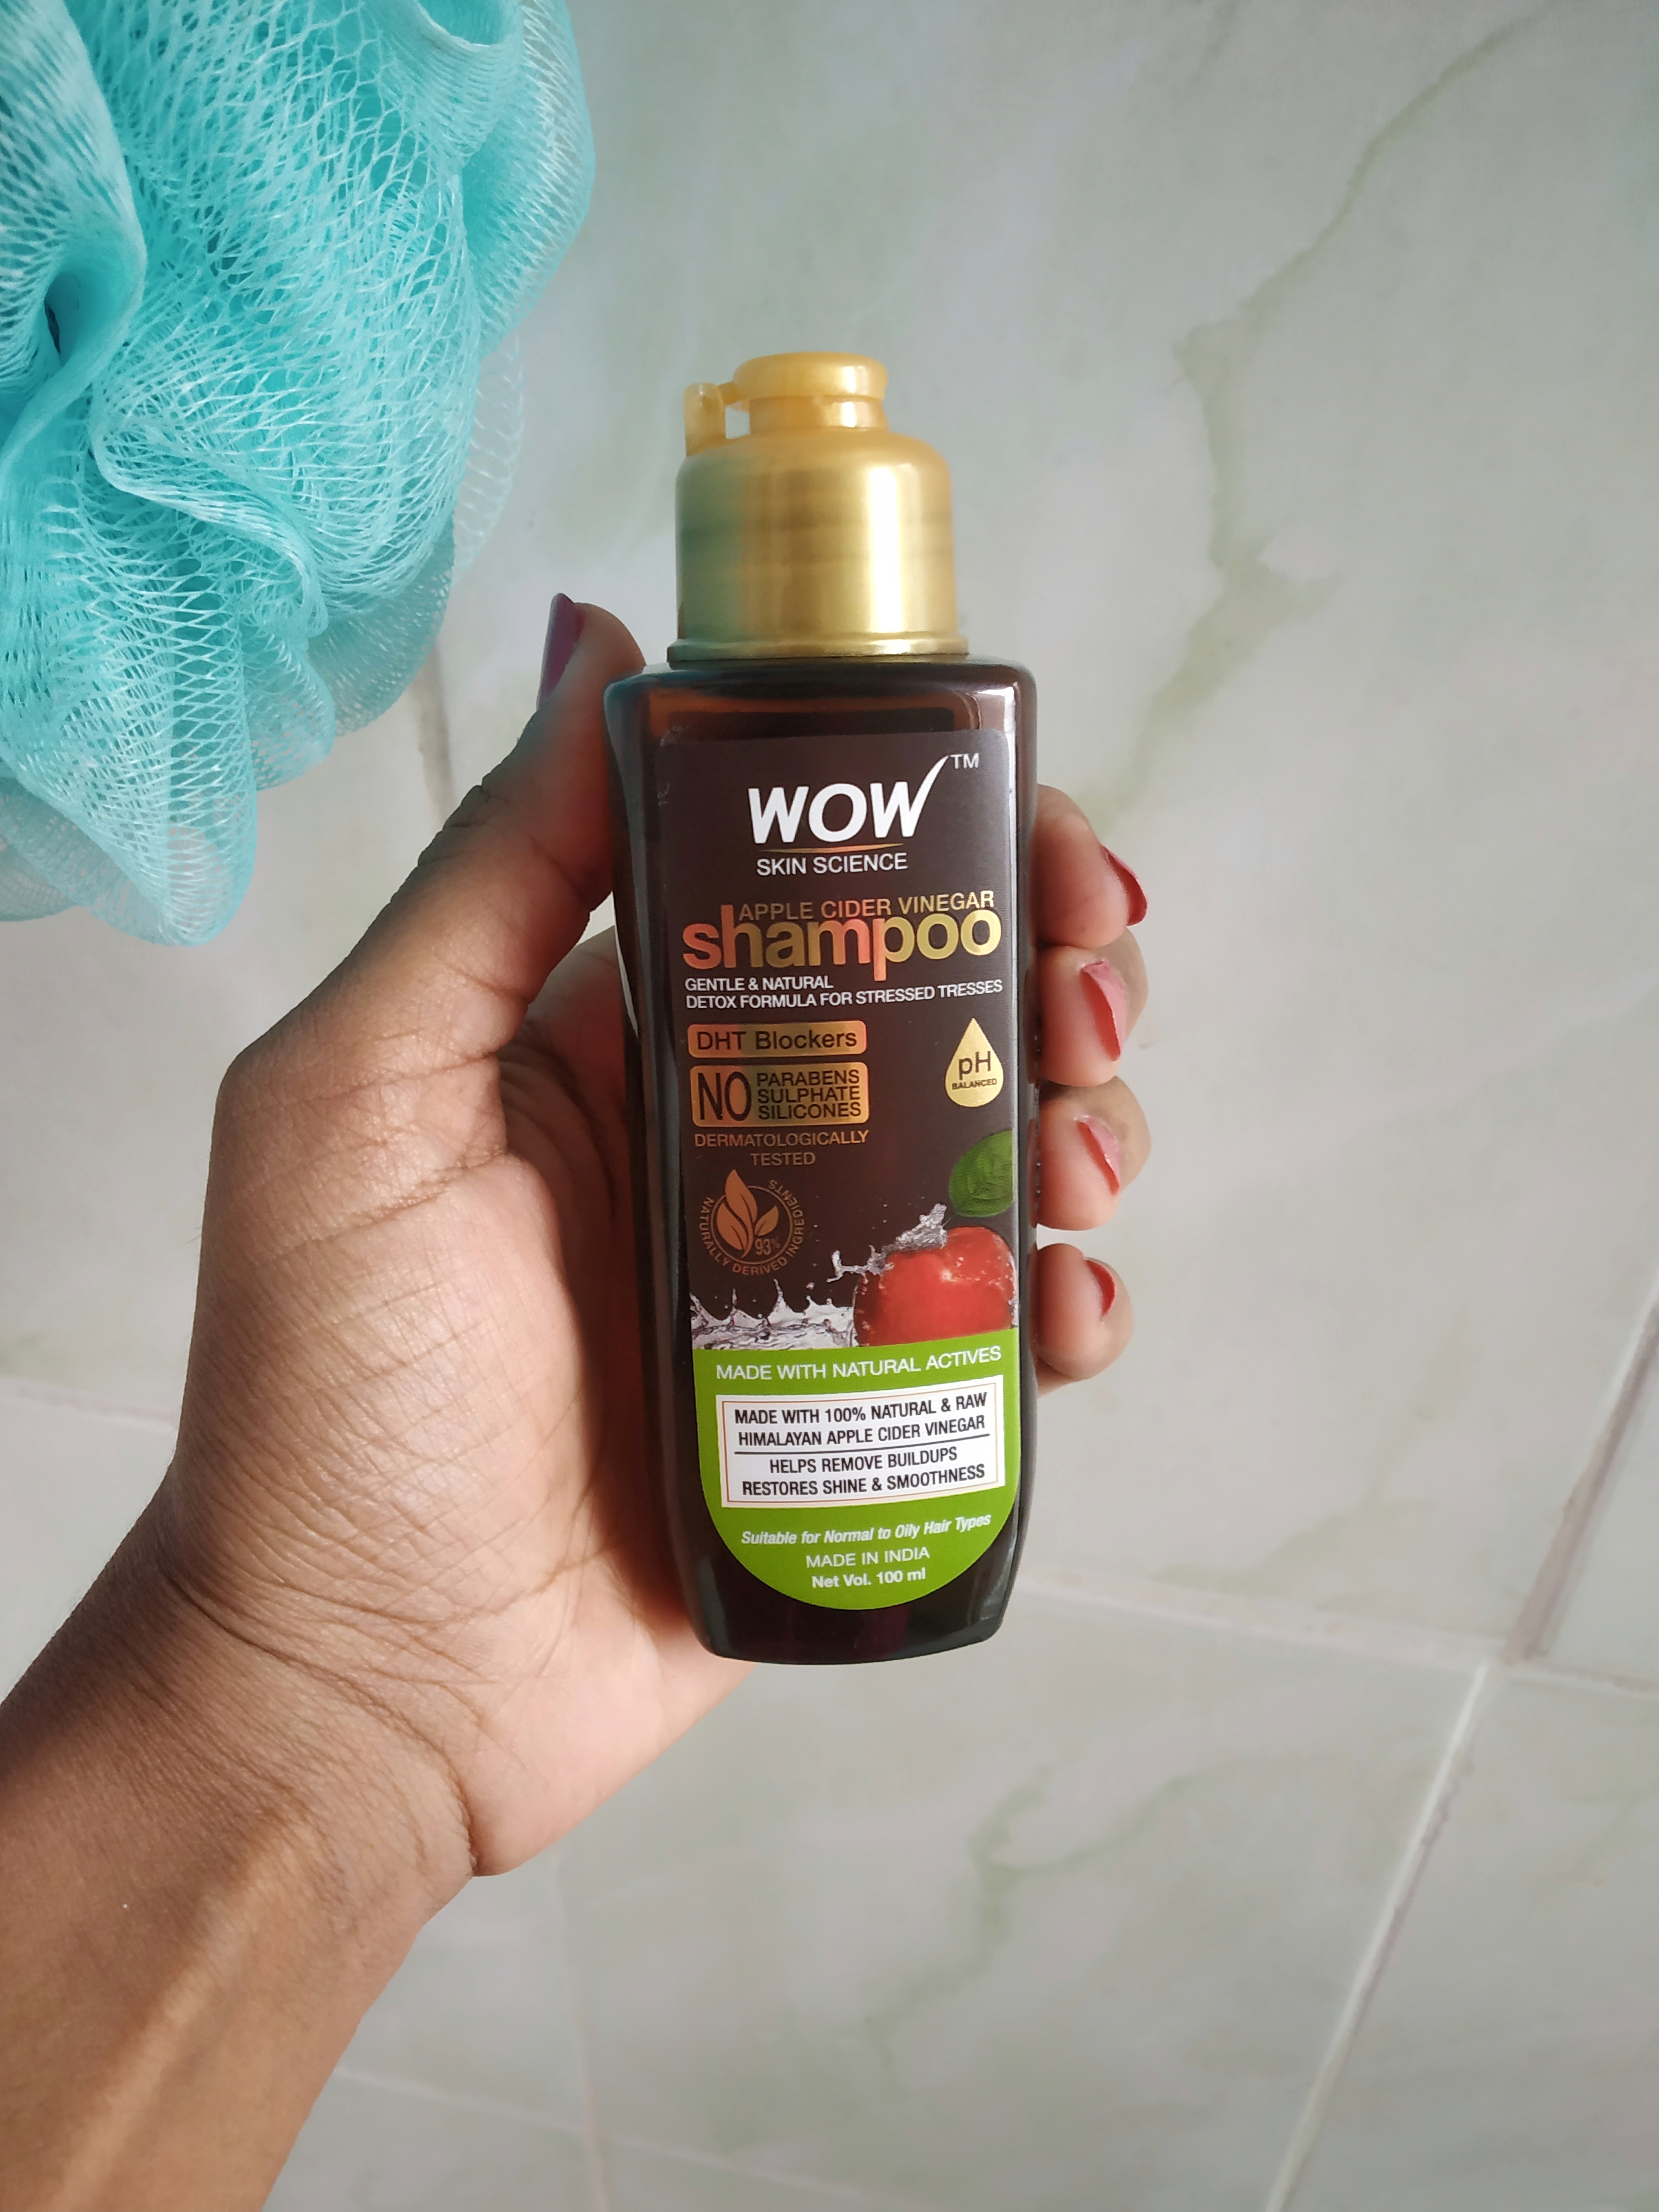 WOW Skin Science Apple Cider Vinegar Shampoo – No Parabens & Sulphate – 300 ml pic 2-As the brand name itself, the product is just Wow!-By praveena_s